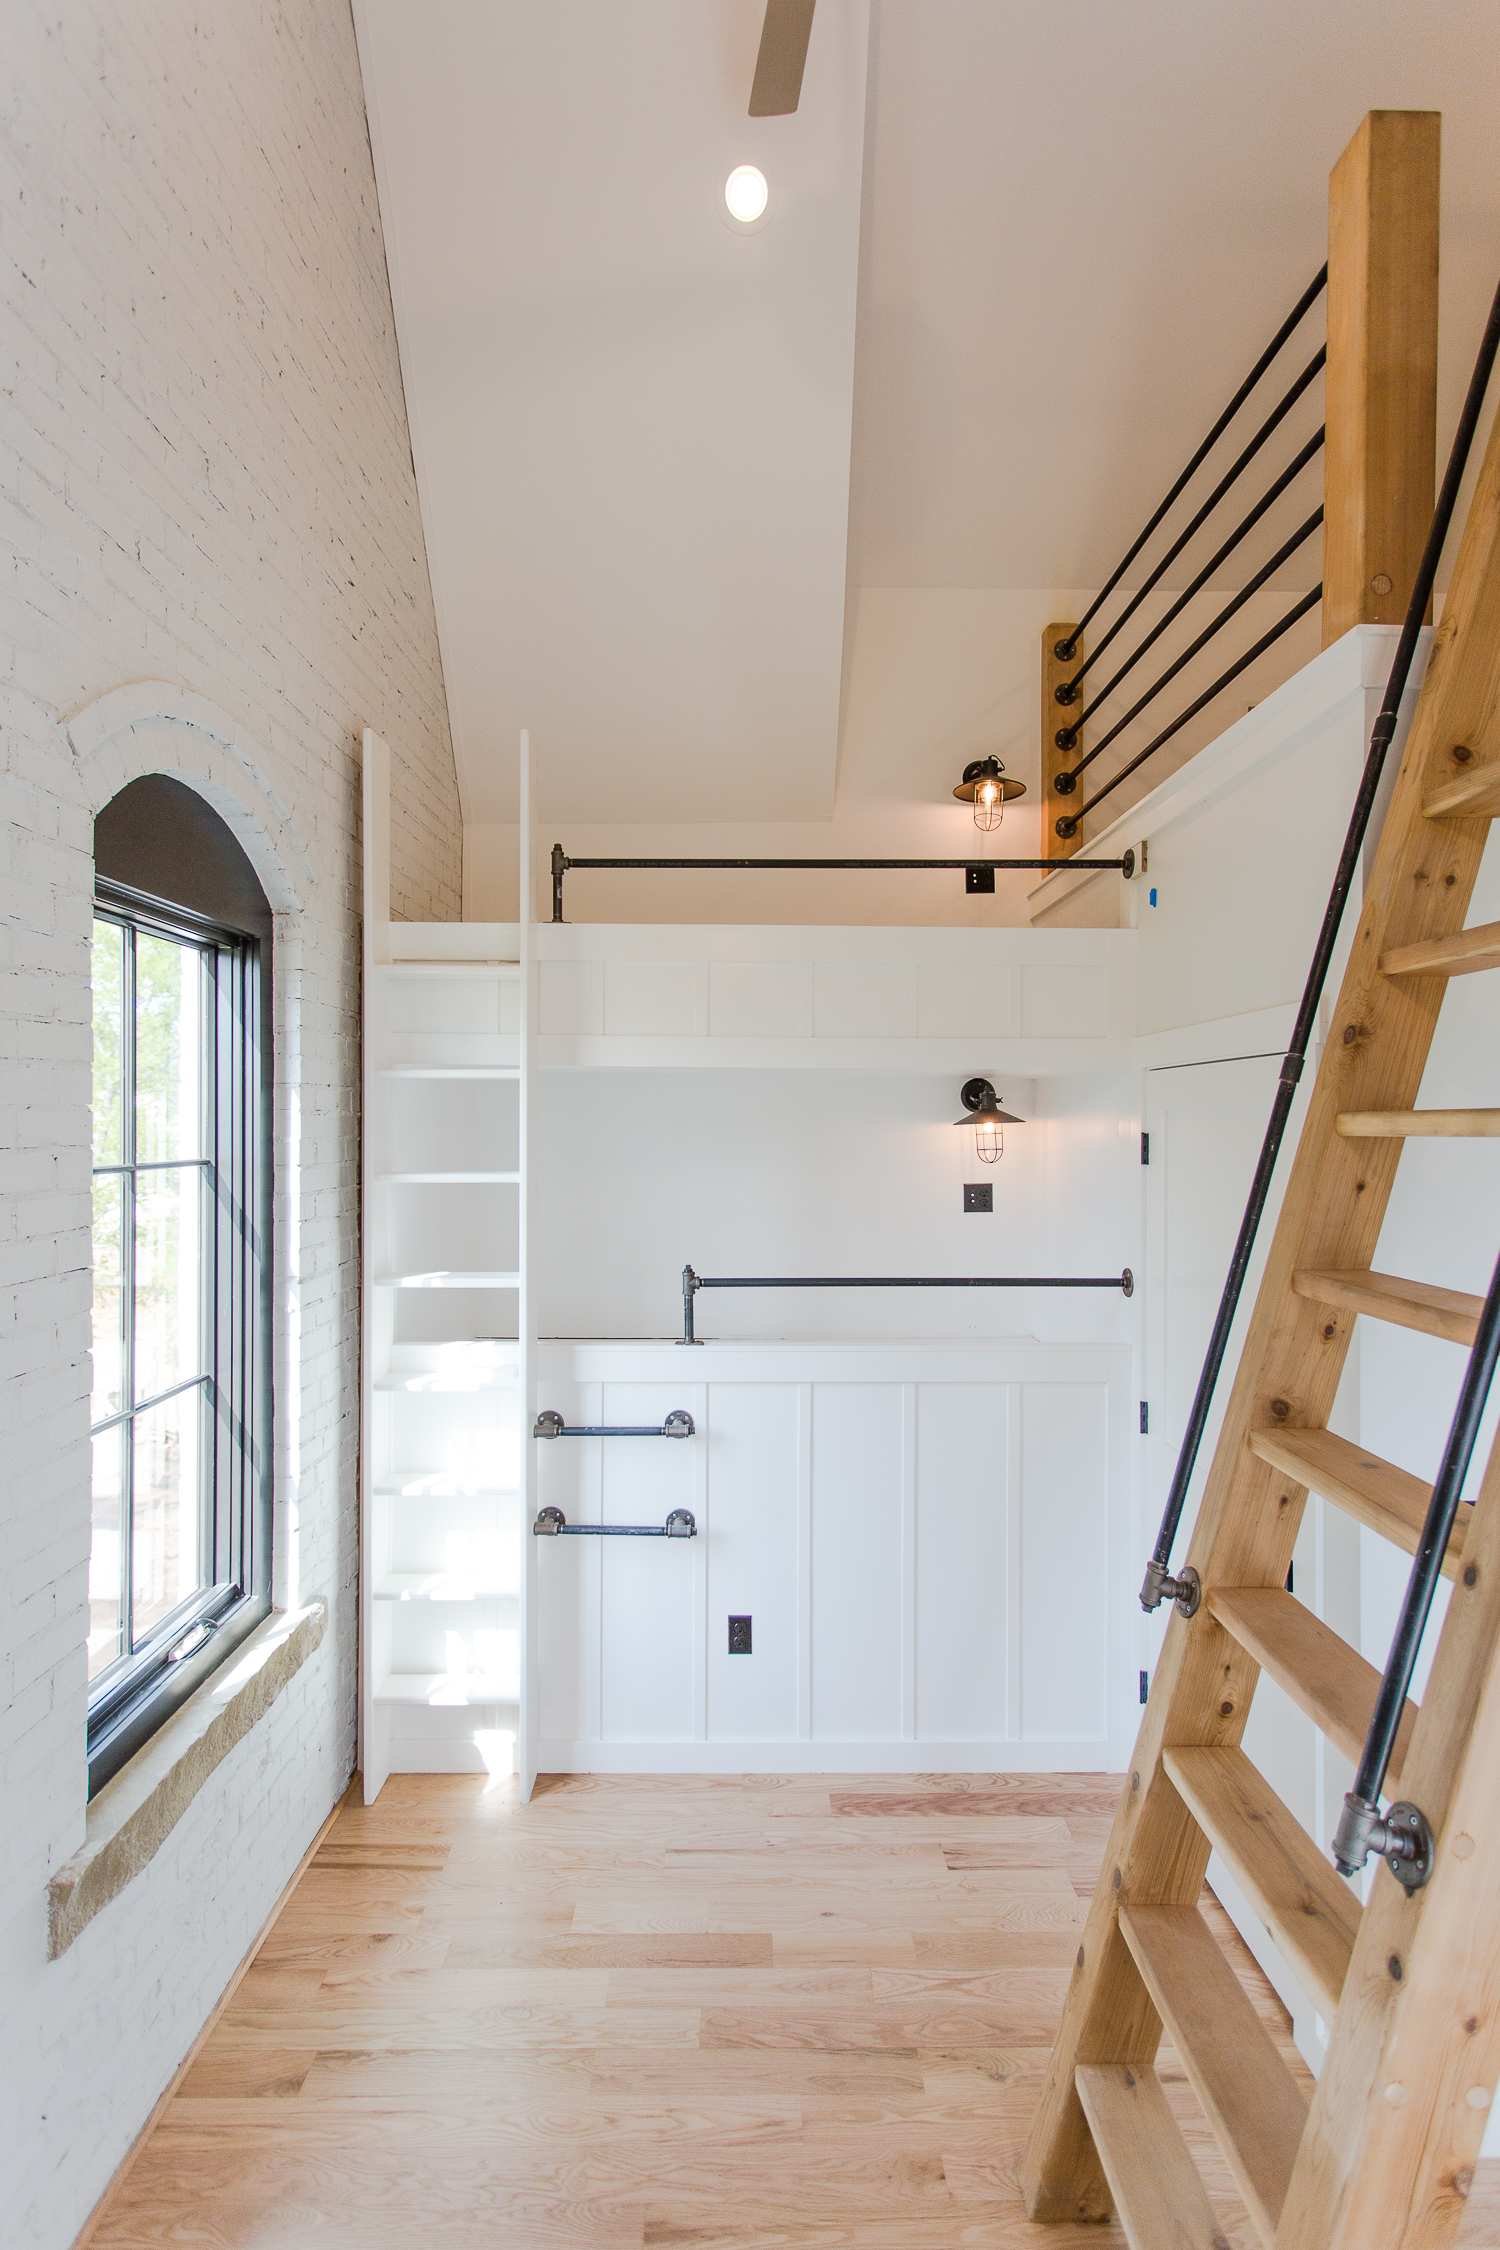 Bunk Room and Loft with Ship Ladder - by Building Culture